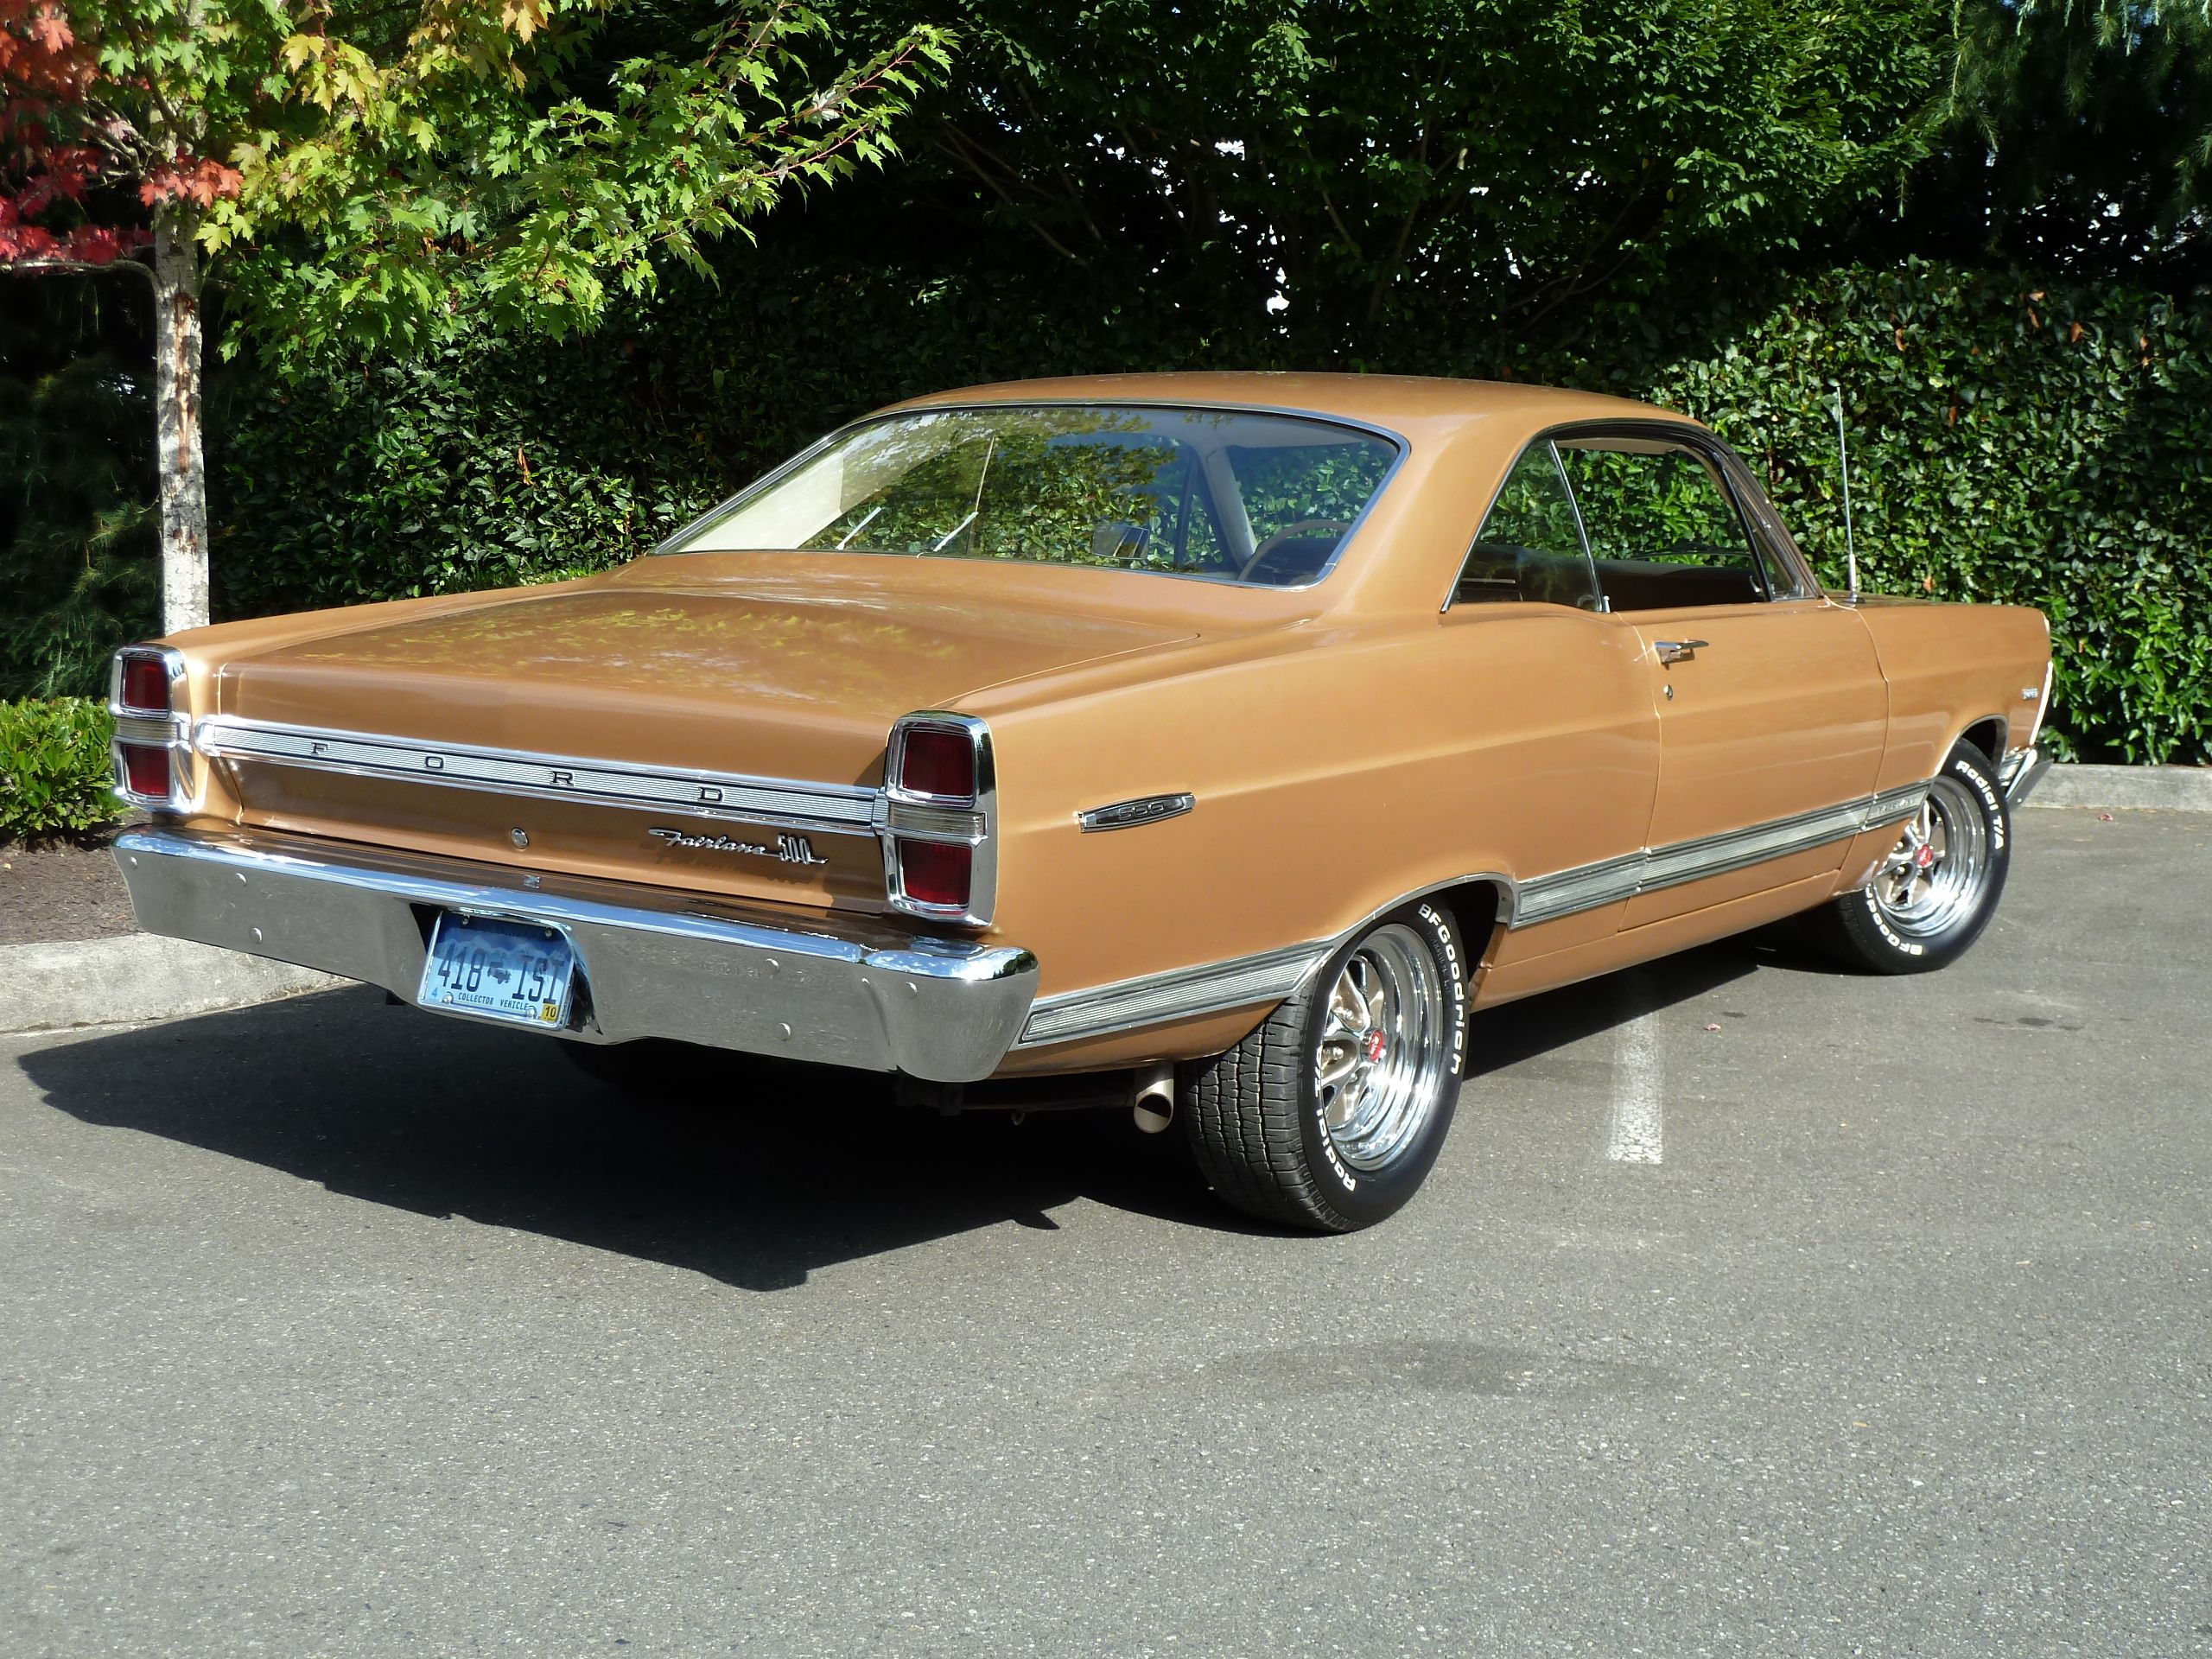 67 ford fairlane other fords pinterest ford fairlane. Black Bedroom Furniture Sets. Home Design Ideas